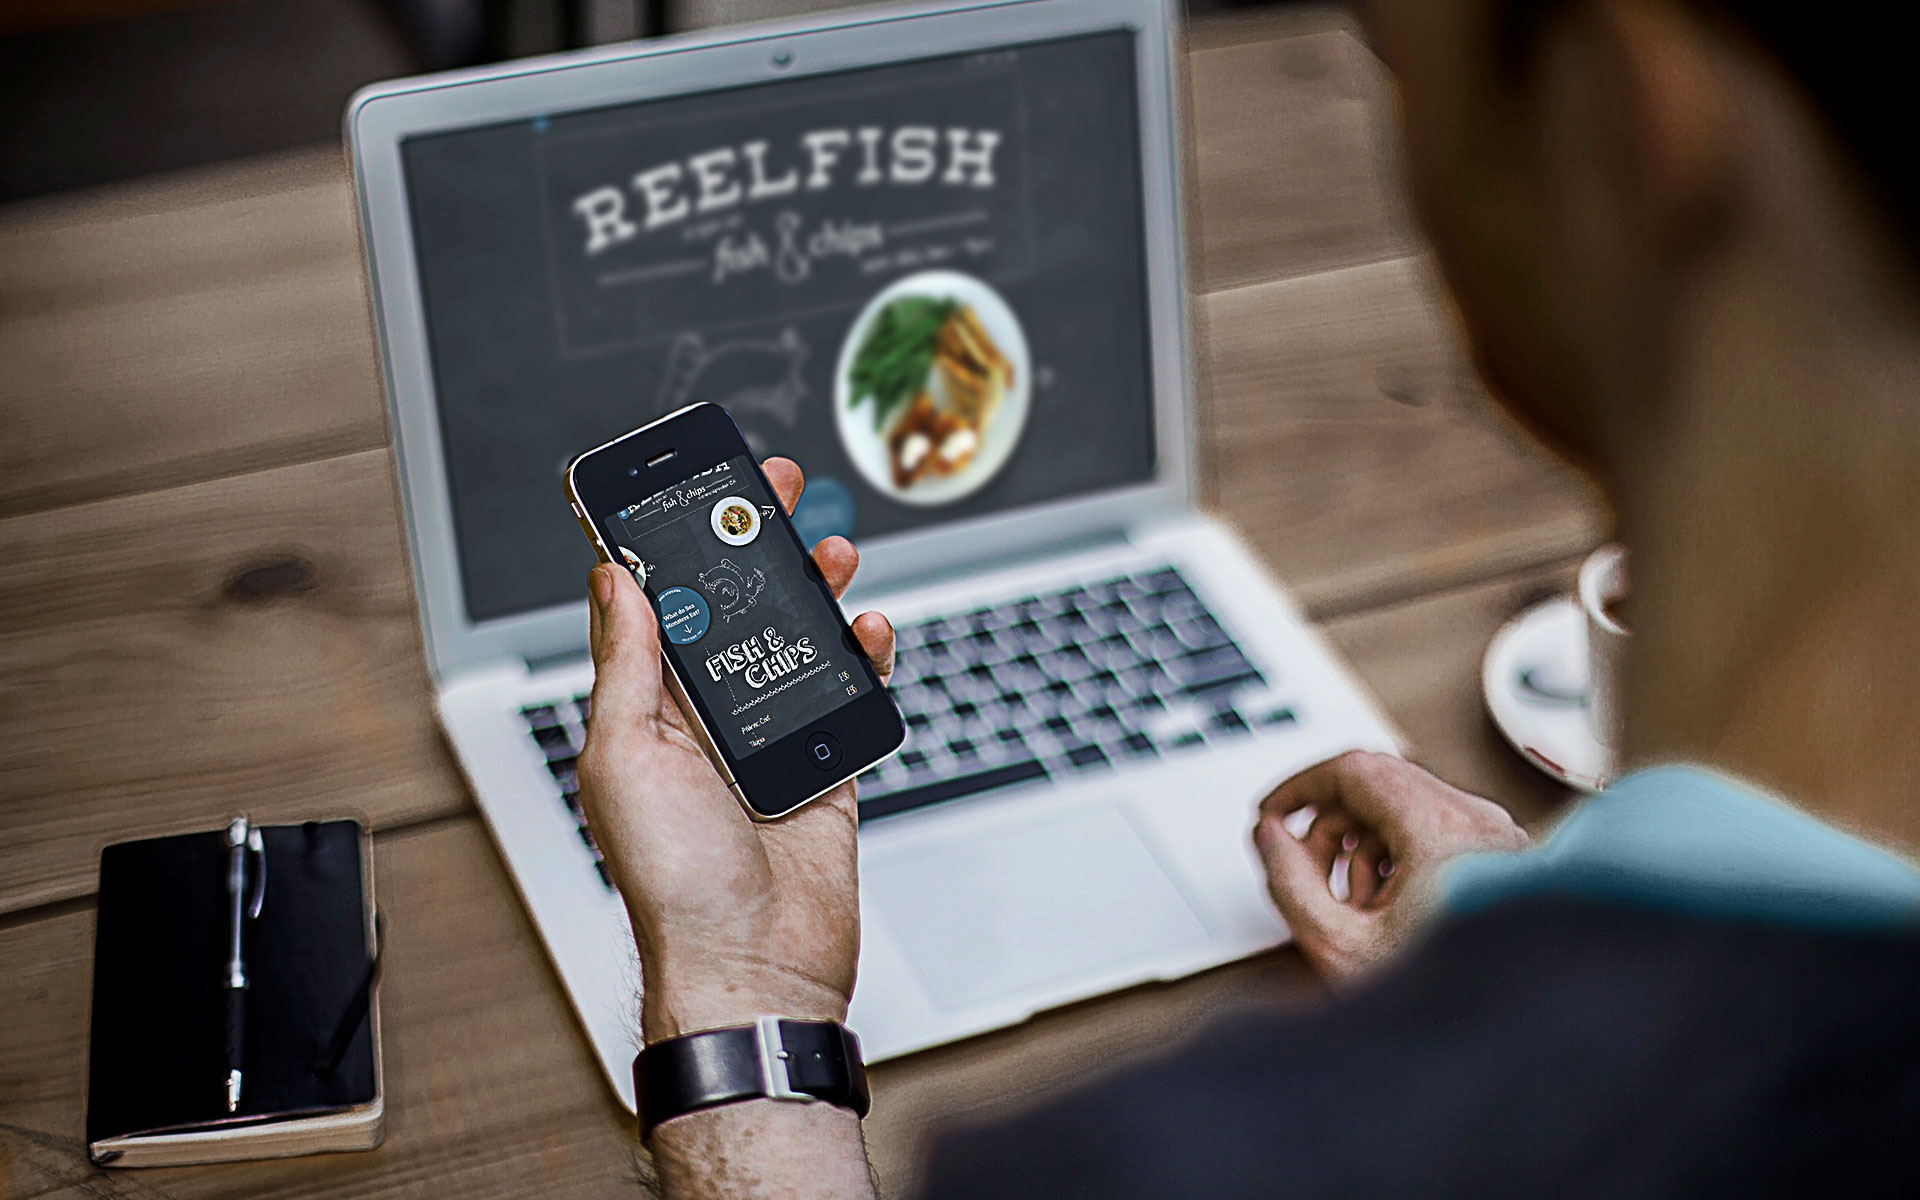 reelfish responsive restaurant menu